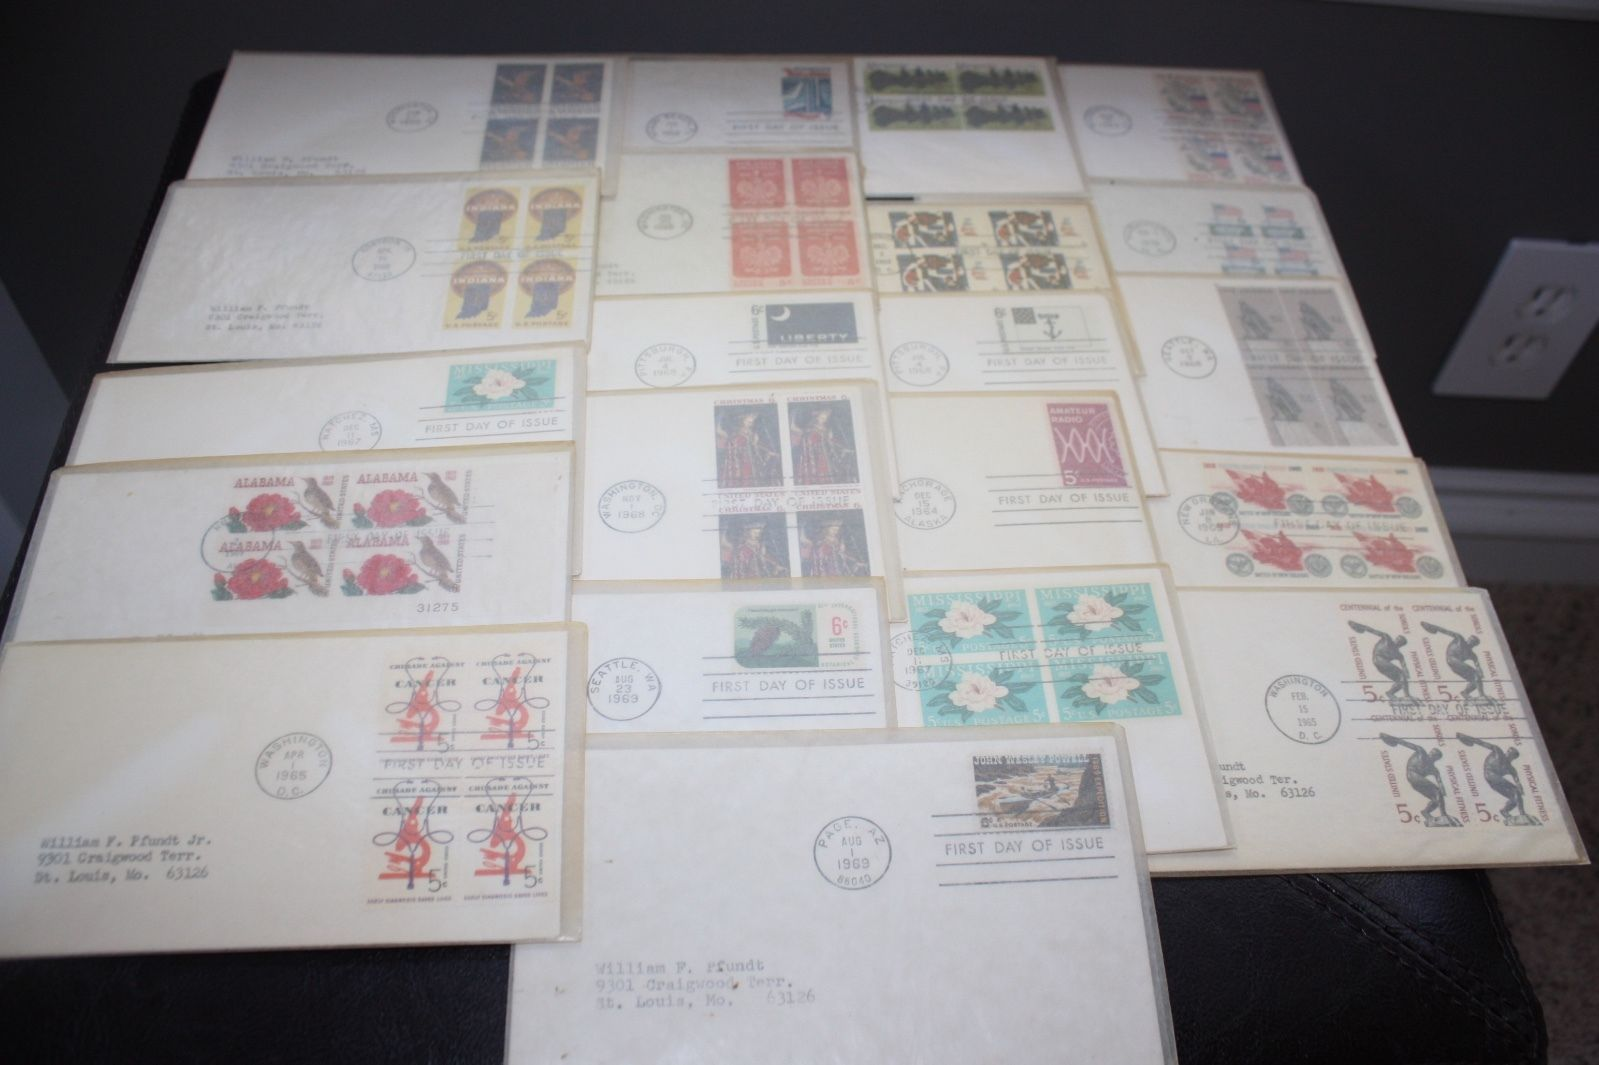 Lot of 119 First Day Issue Stamped Envelopes 1950-1970